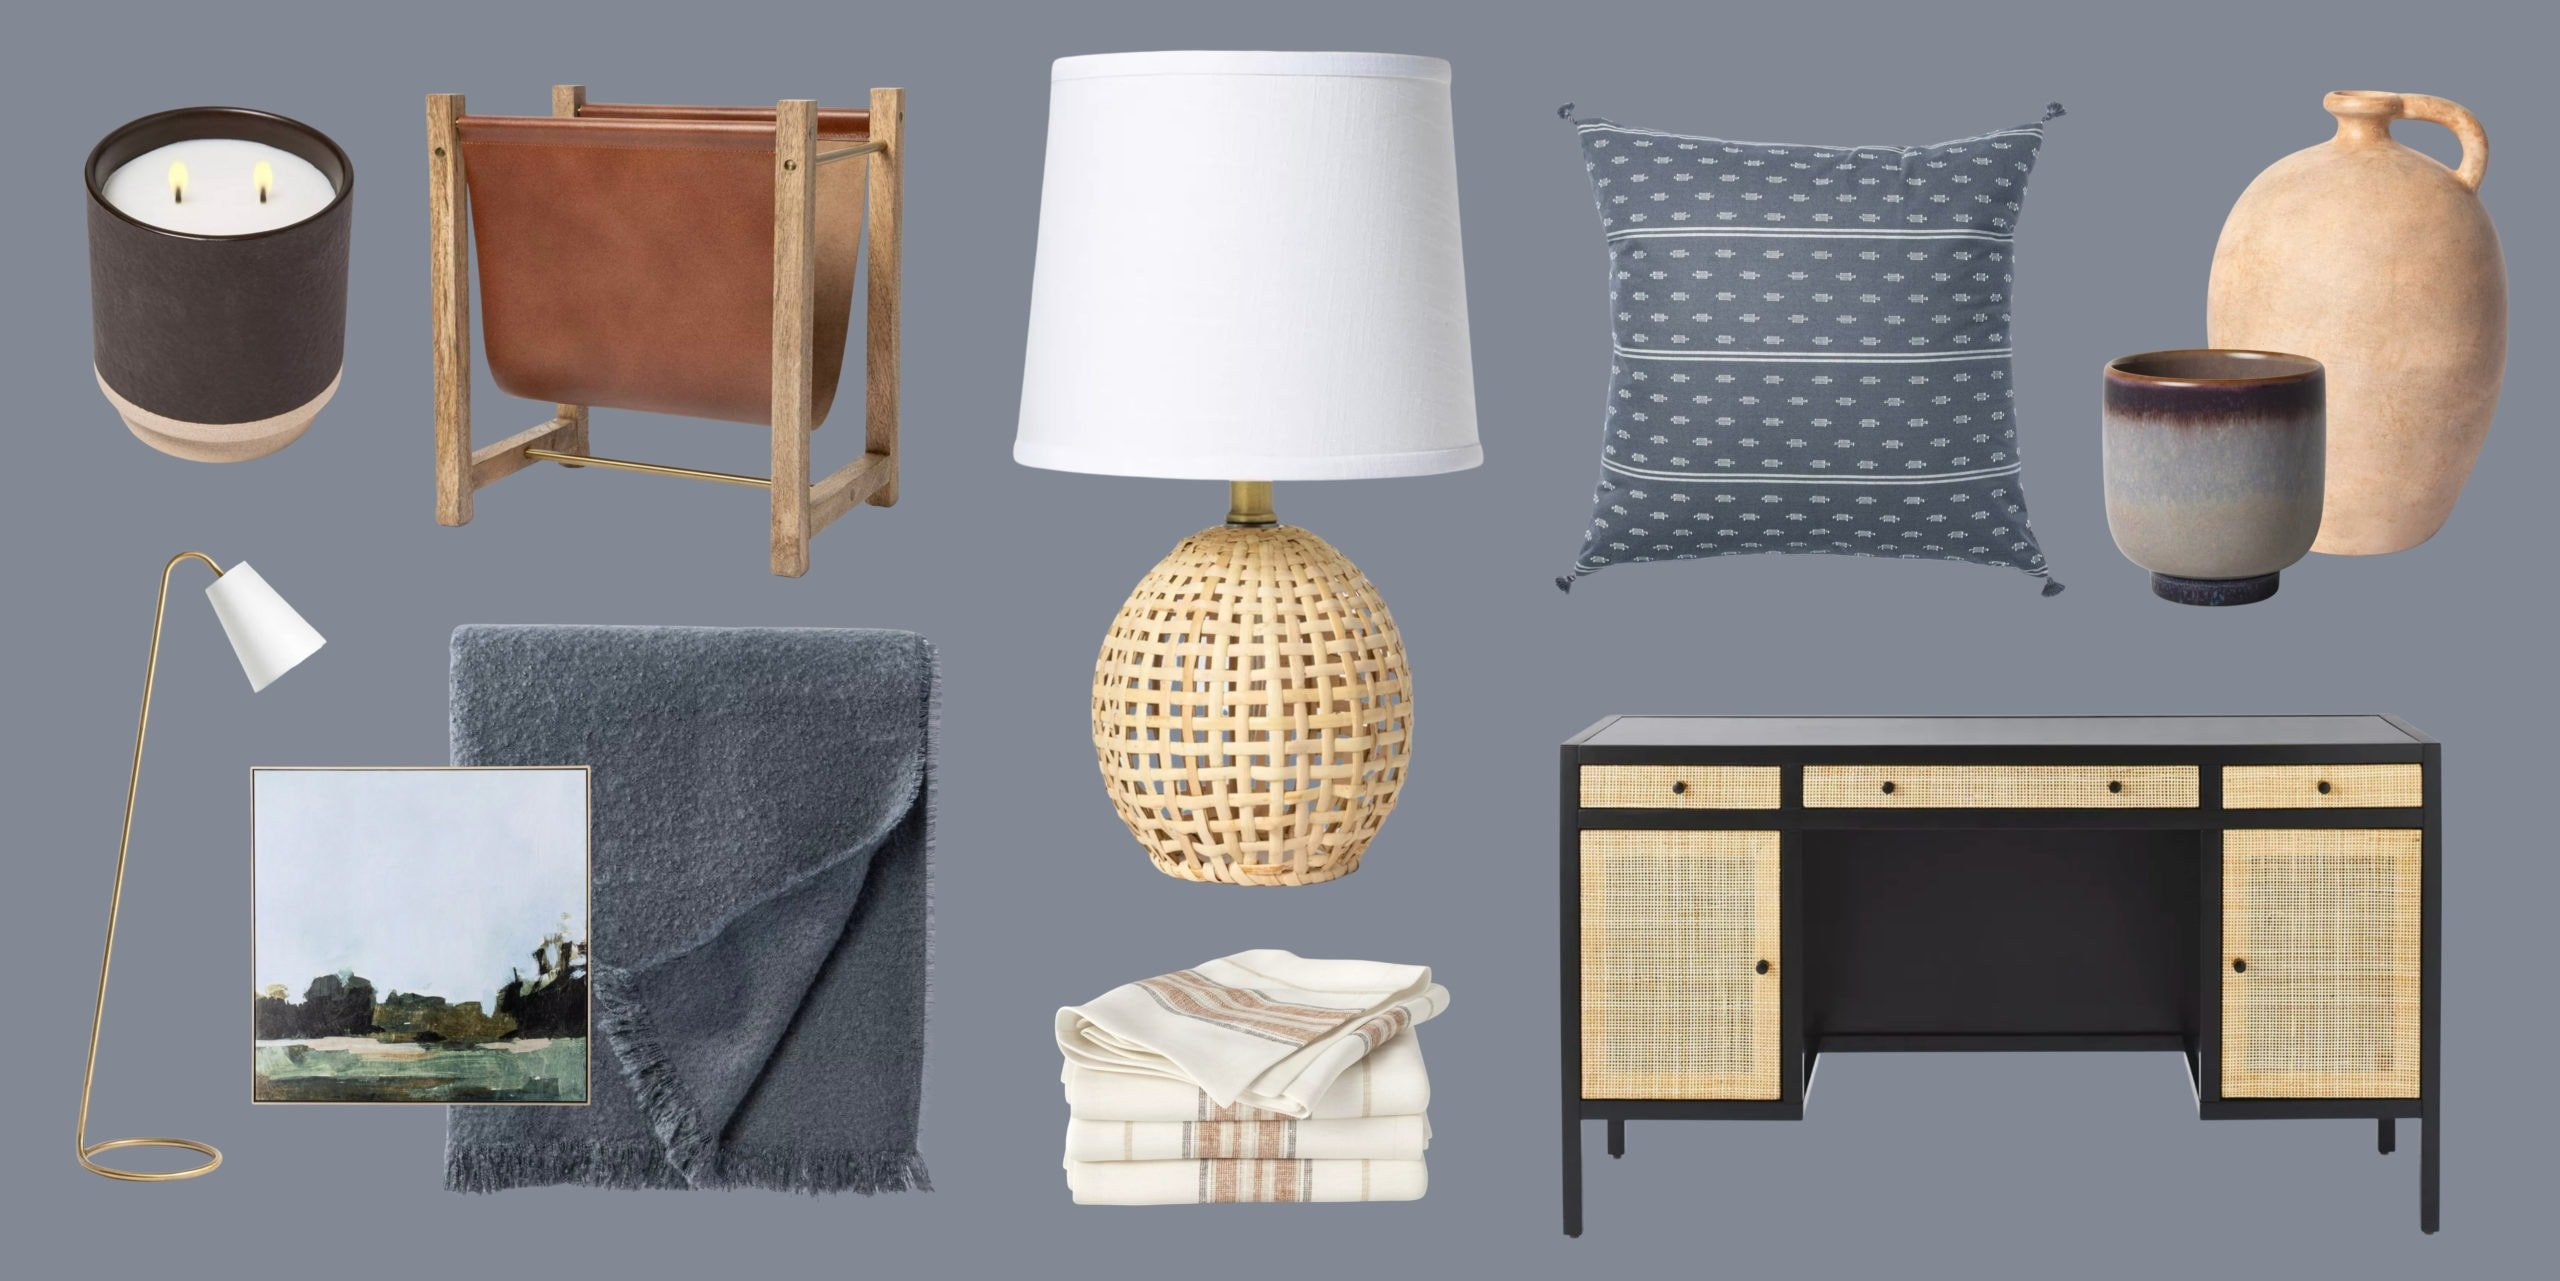 Bobby's 15 Favorite (New) Home Decor Pieces From Target - Bobby Berk